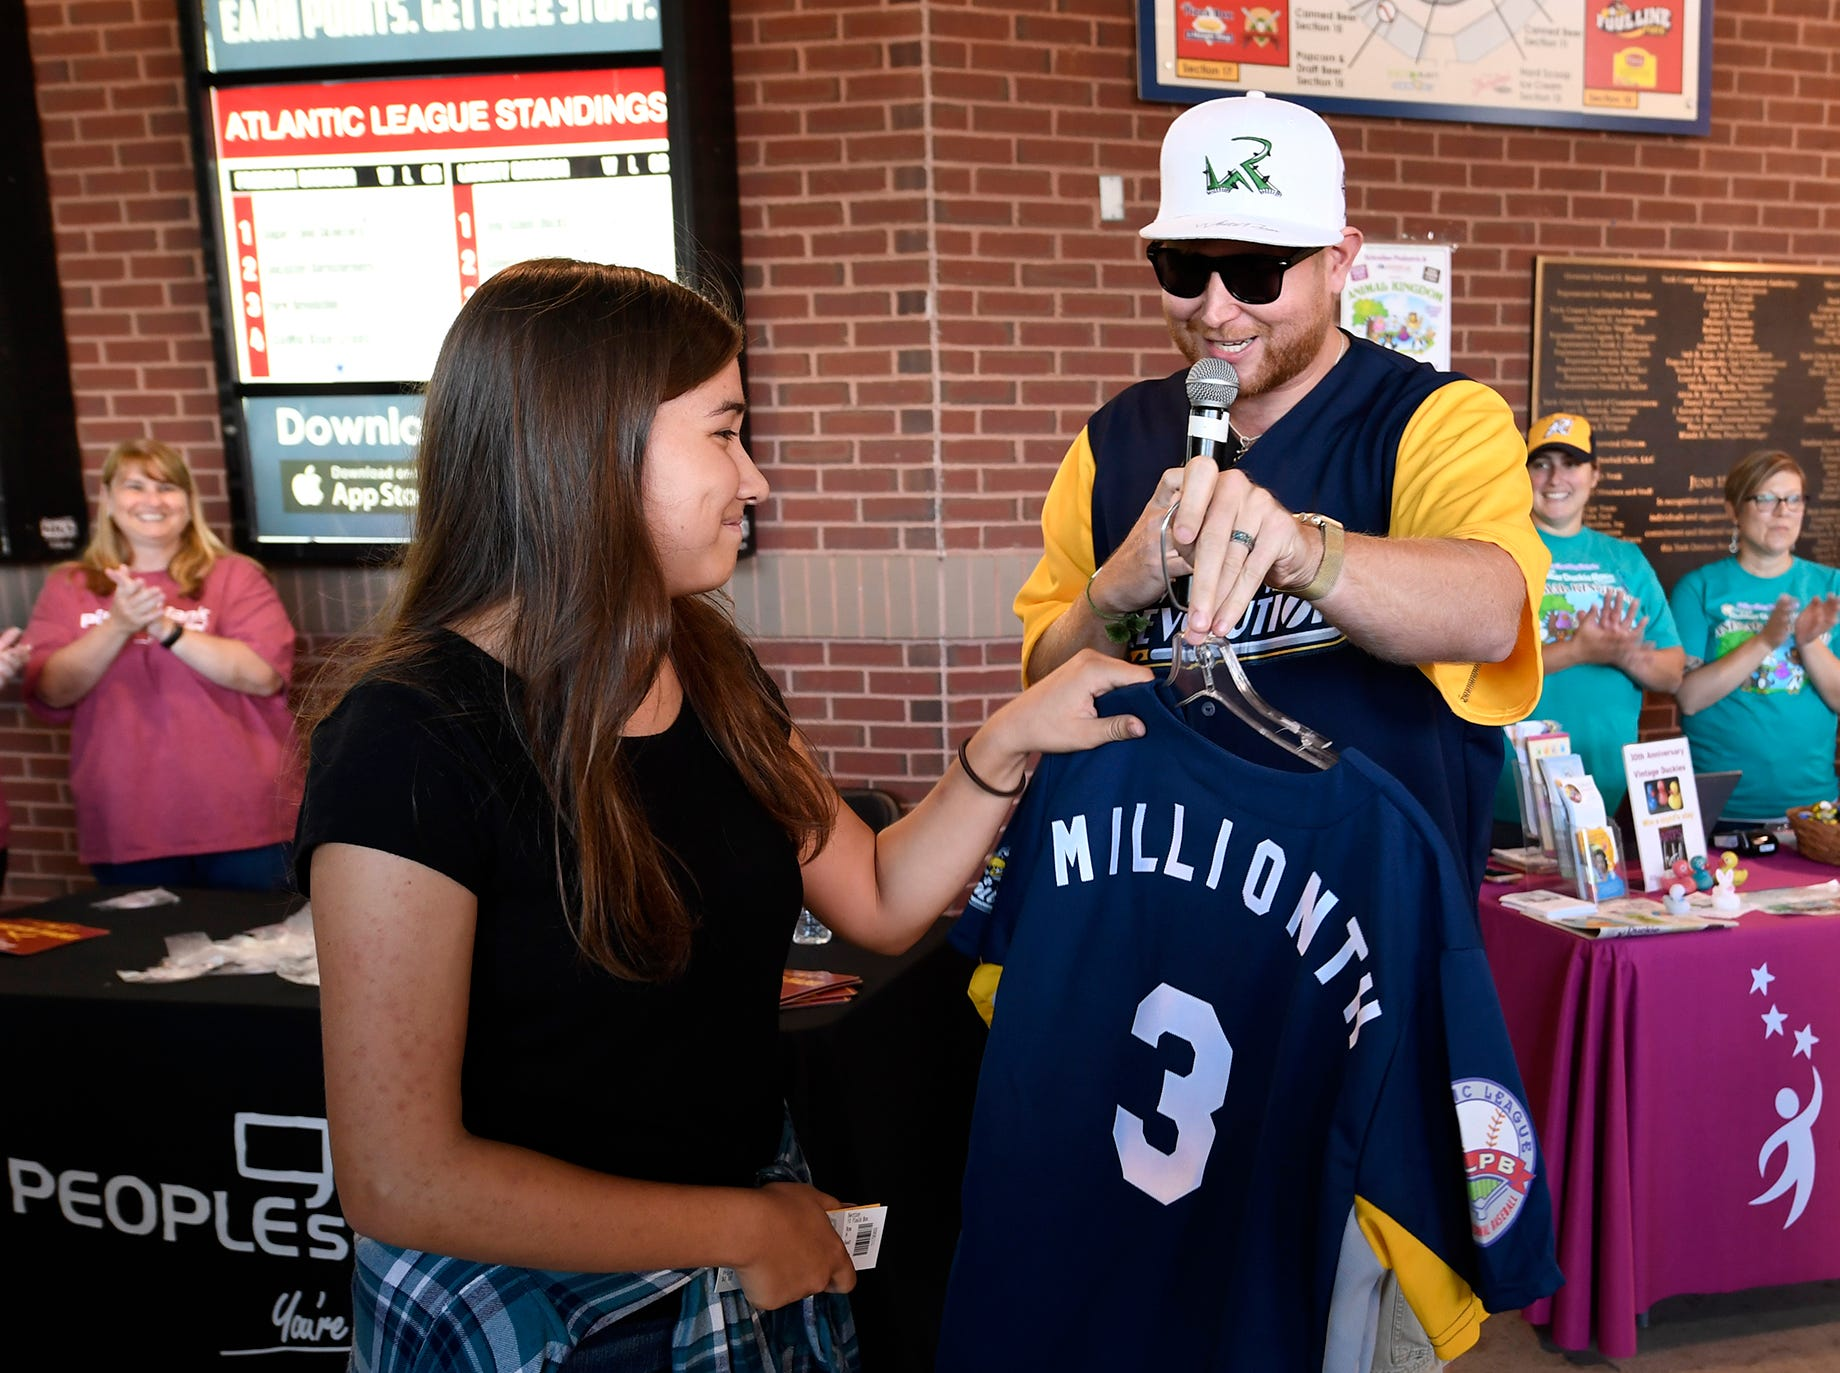 Rev's on-field host Eric Hartman, right, presents Courtney Kmett, 15, with the 3,000,000th fan jersey before the Revolution's game against Lancaster, Thursday, August 23, 2018. The lucky fan received the special Revs jersey, a bat signed by the team and two season passes for 2019. Courtney and her family are home in York on break from Bangladesh, where the family serves as missionaries. John A. Pavoncello photo